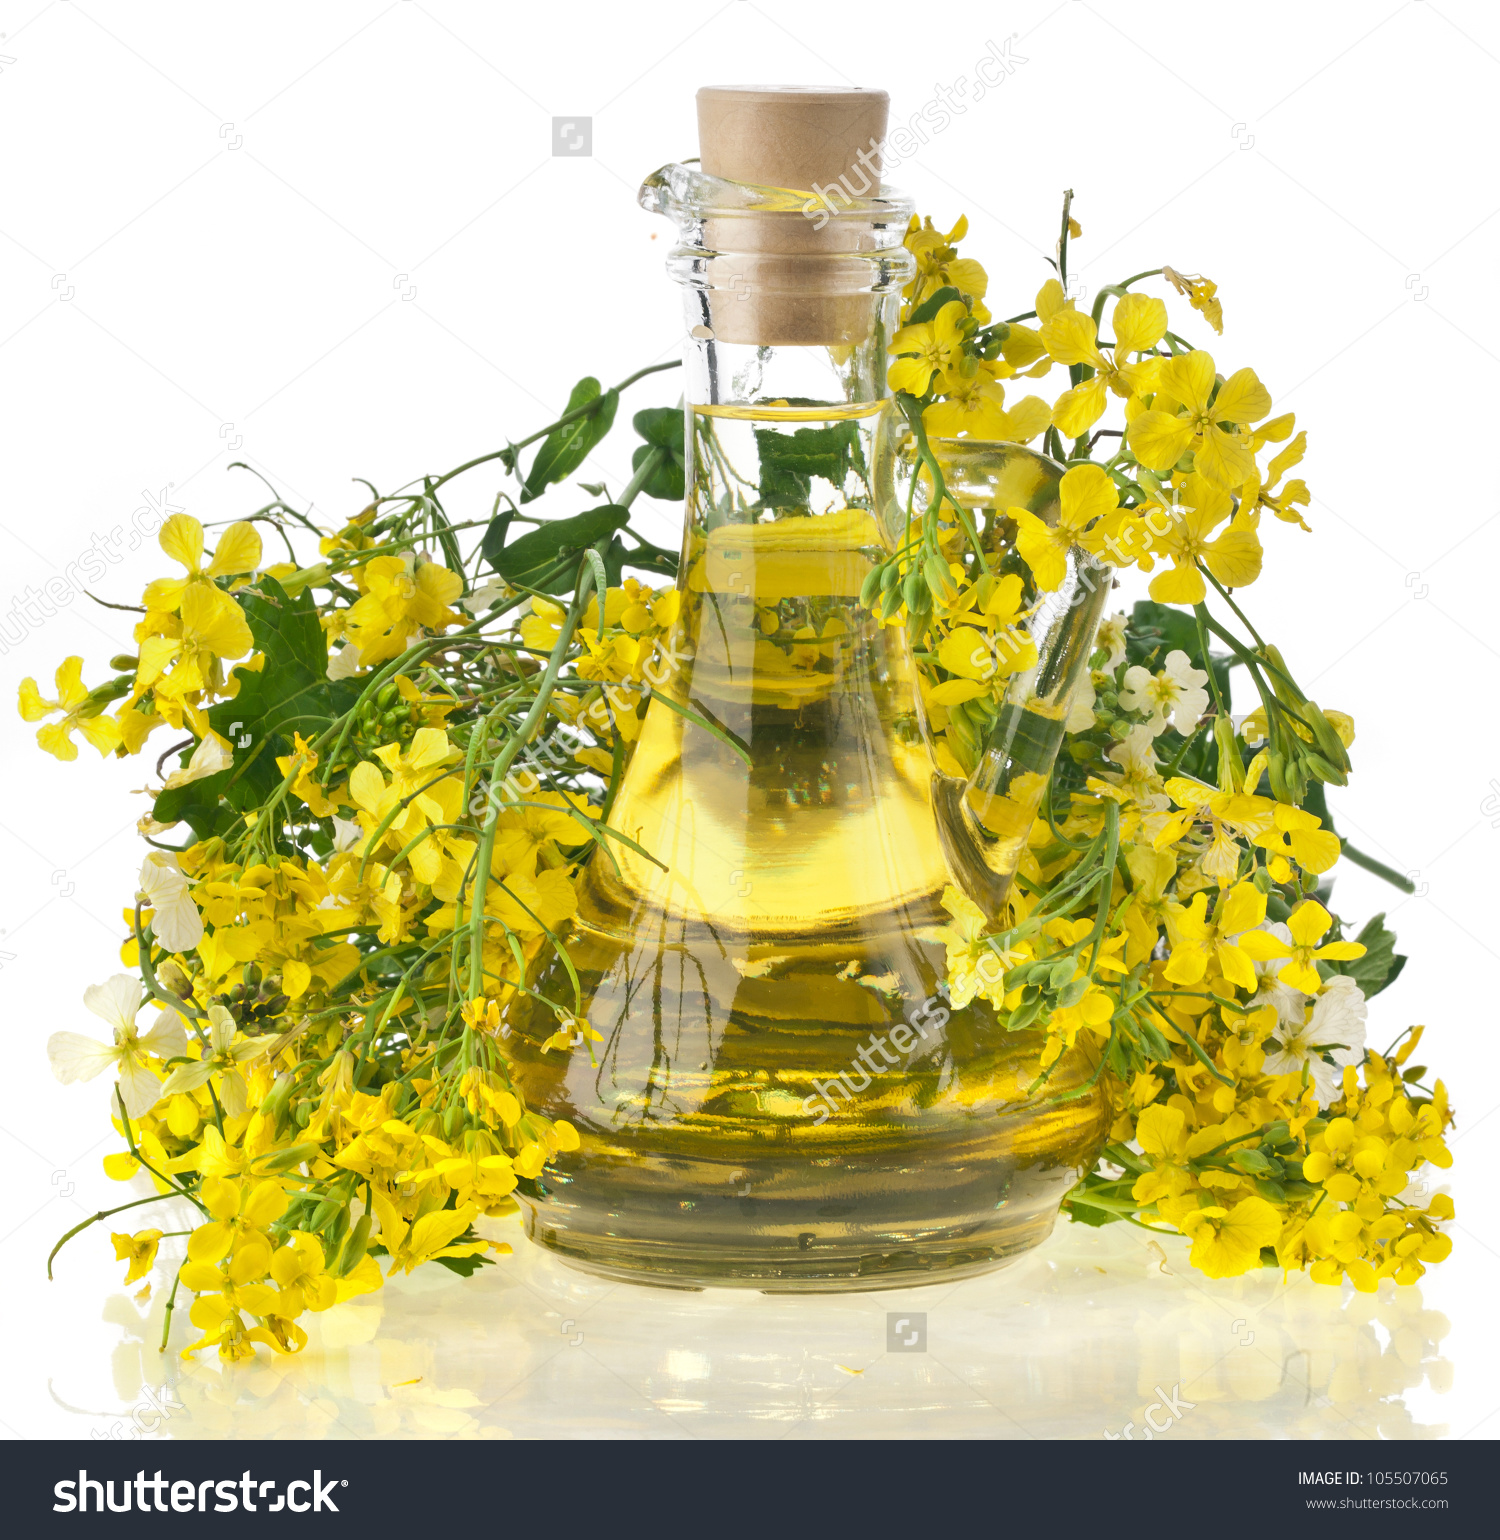 Flower Of A Rapeseed, Rape Blossoms With Bottle Decanter Oil.